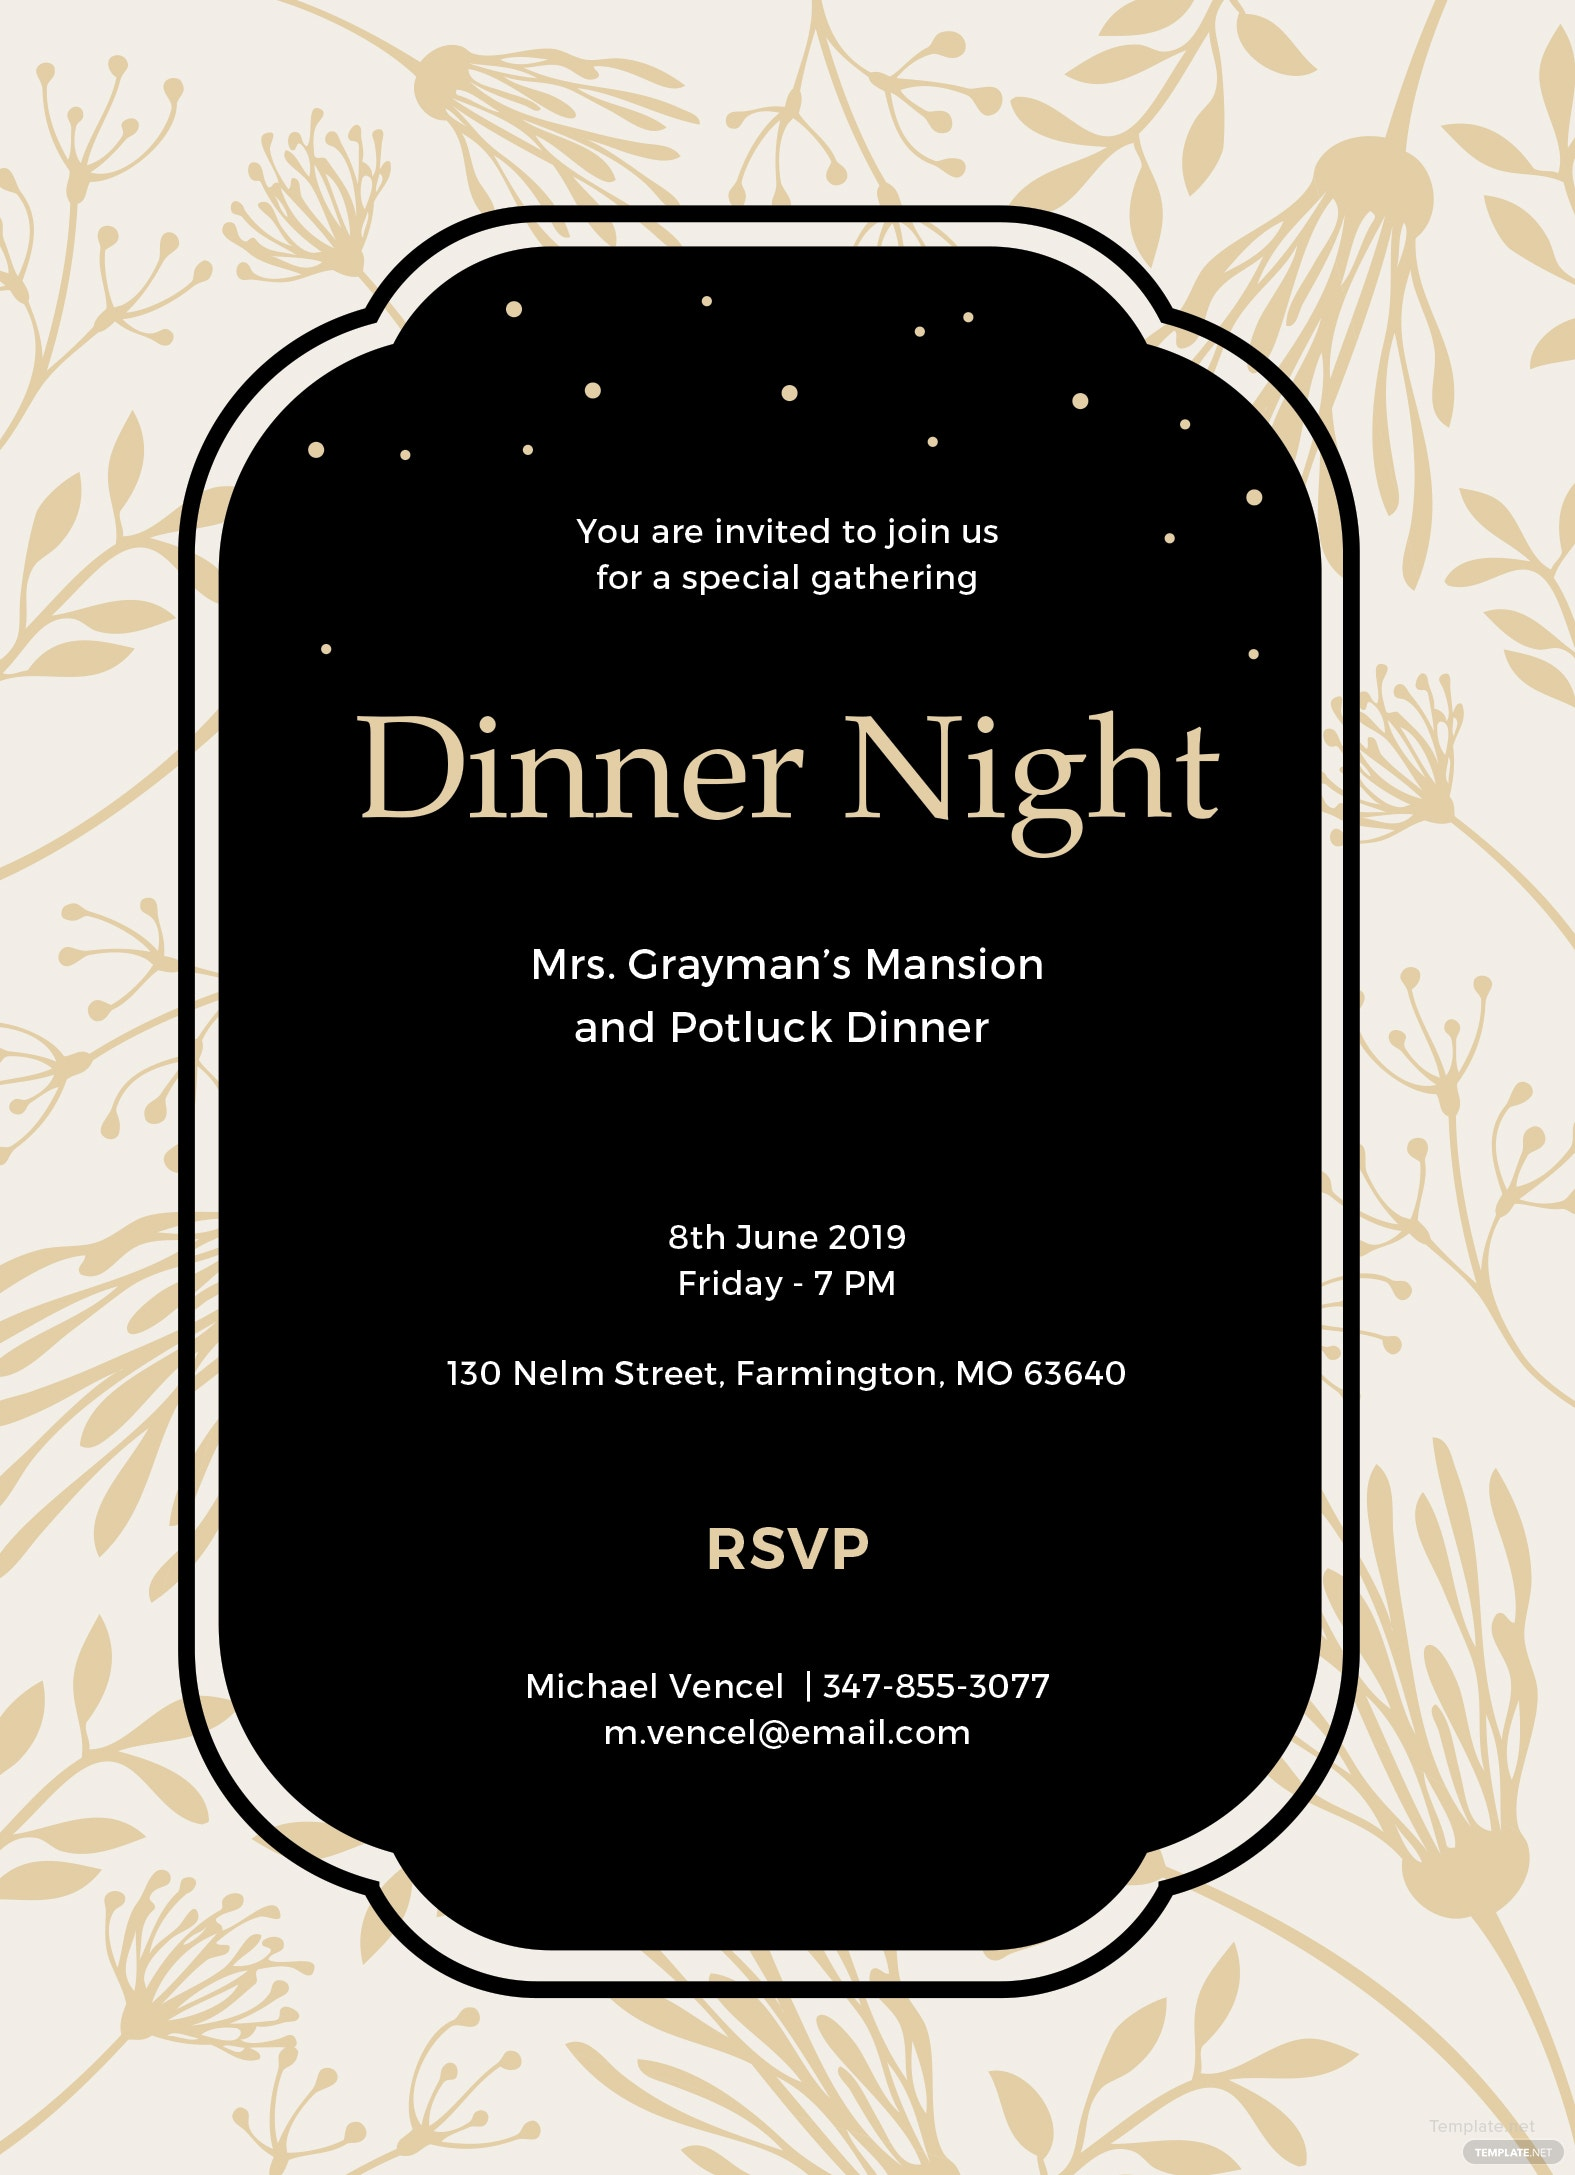 free dinner invitation template in ms word publisher illustrator apple pages. Black Bedroom Furniture Sets. Home Design Ideas